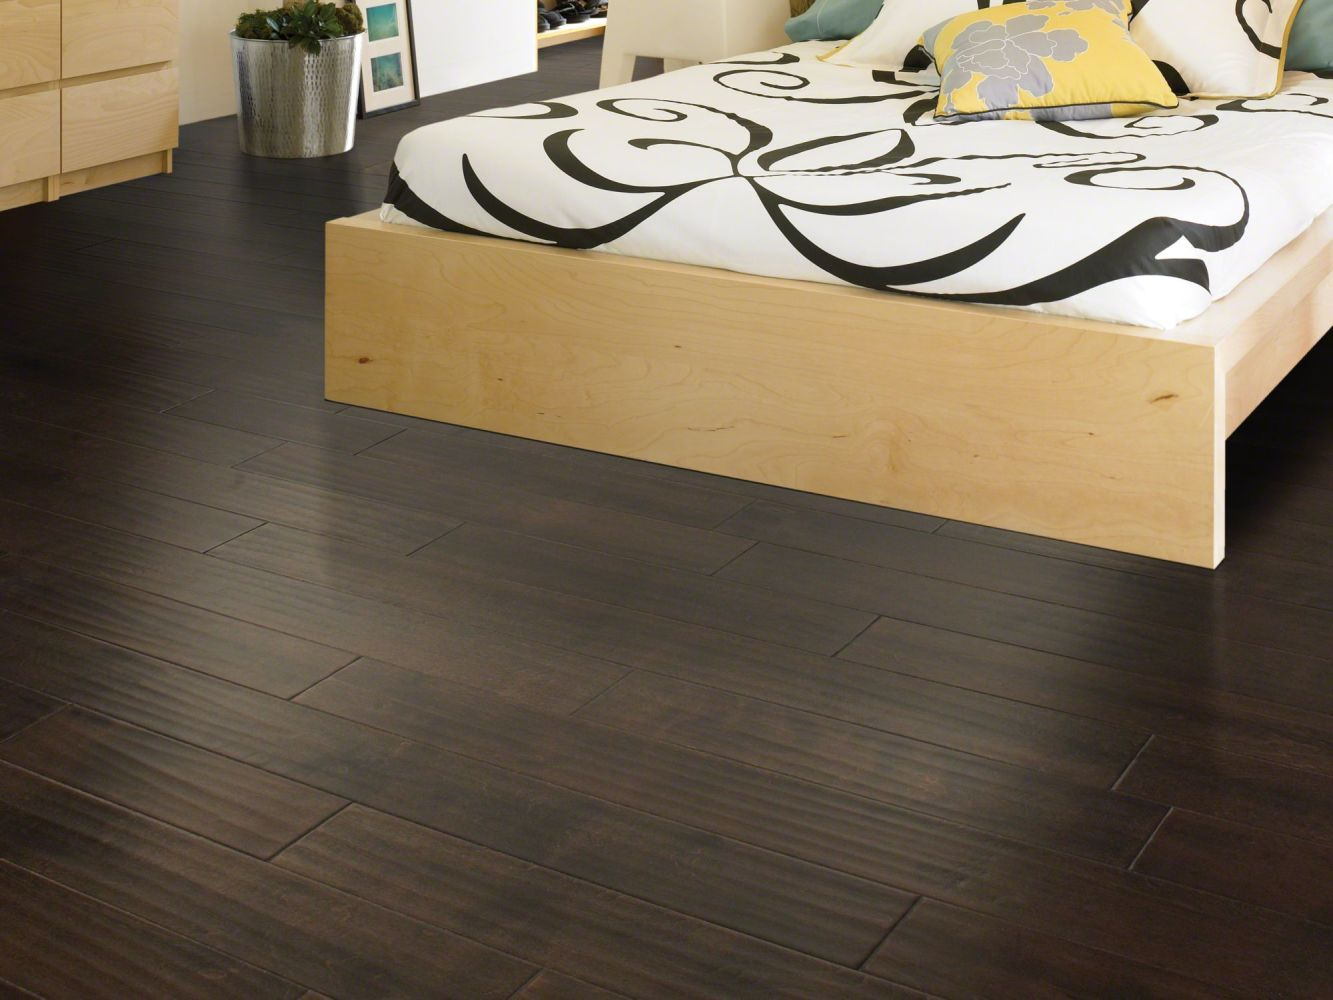 Shaw Floors Home Fn Gold Hardwood Delray Bayfront 00493_HW493